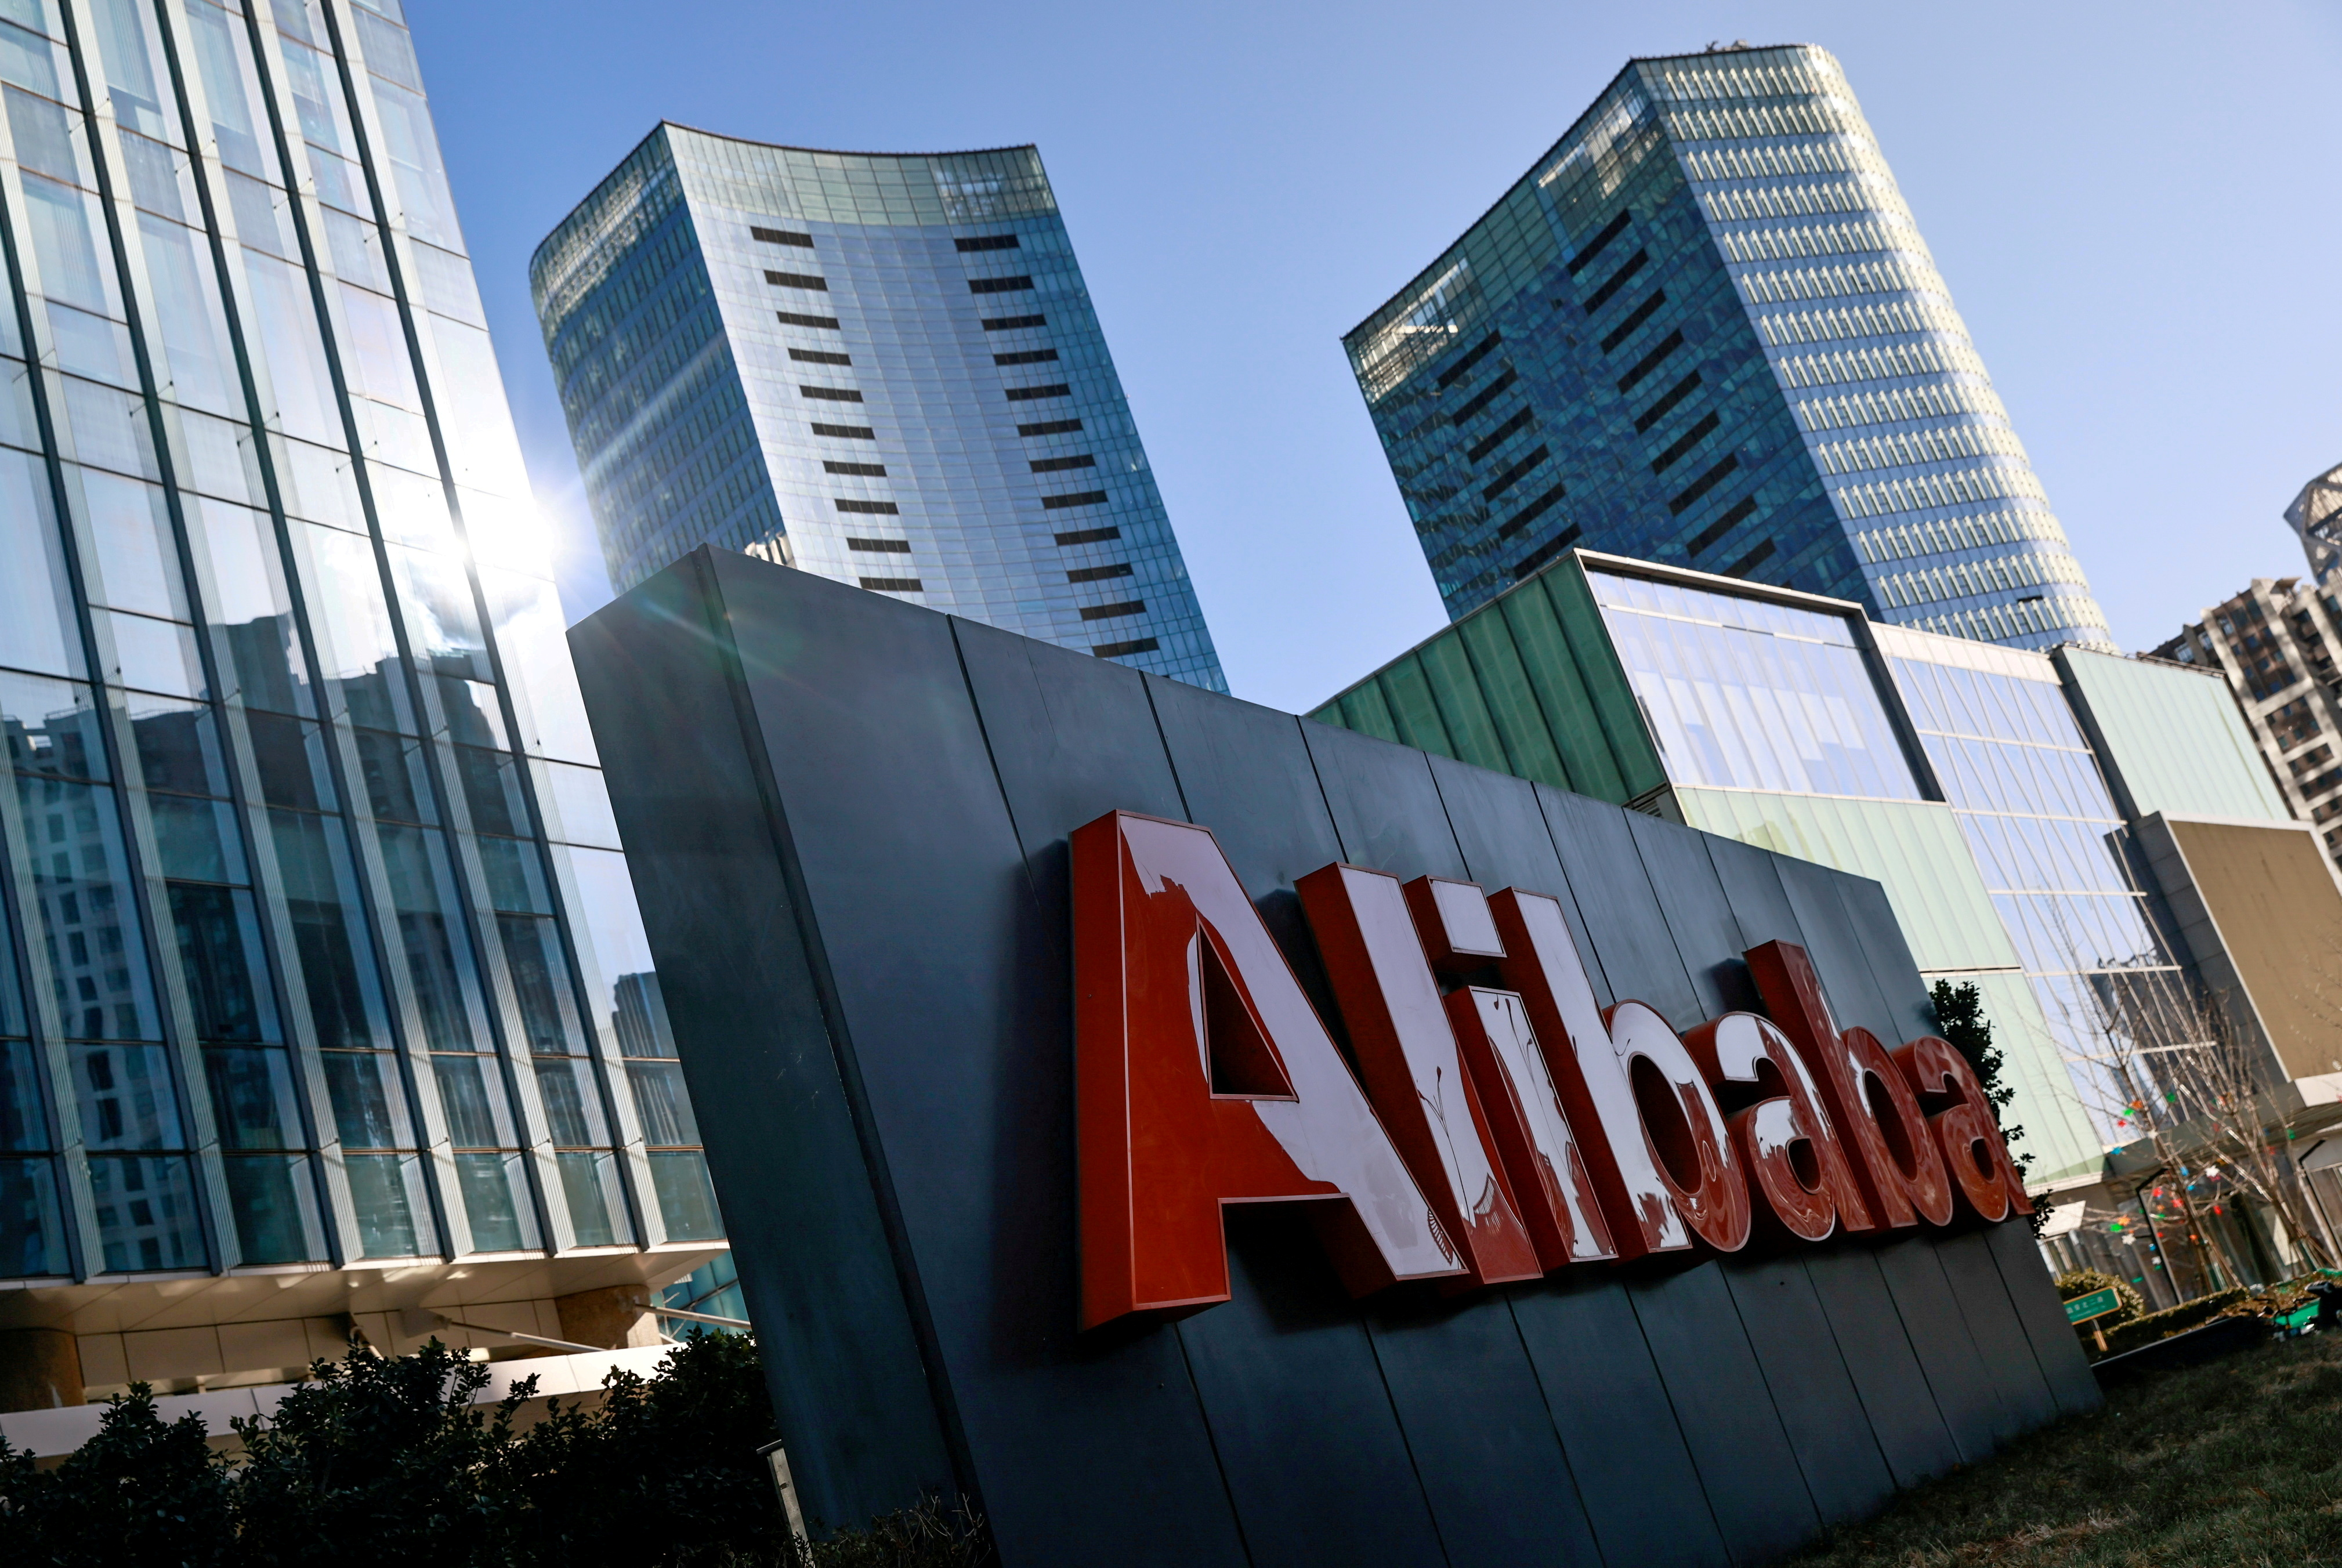 The logo of Alibaba Group is seen at its office in Beijing, China Jan. 5, 2021. REUTERS/Thomas Peter/File Photo